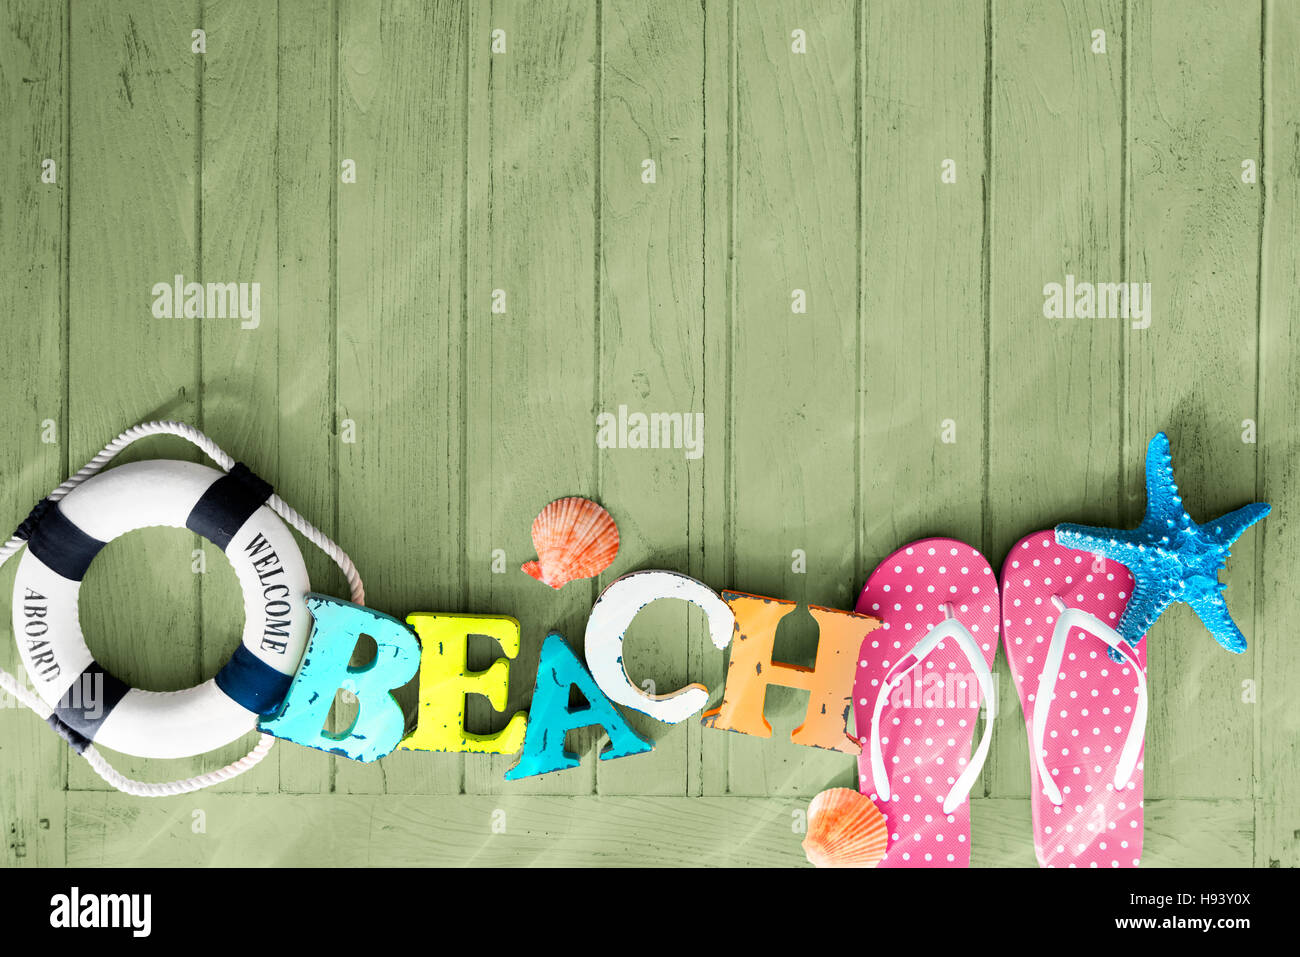 Beach Objects Empty Space Concept - Stock Image